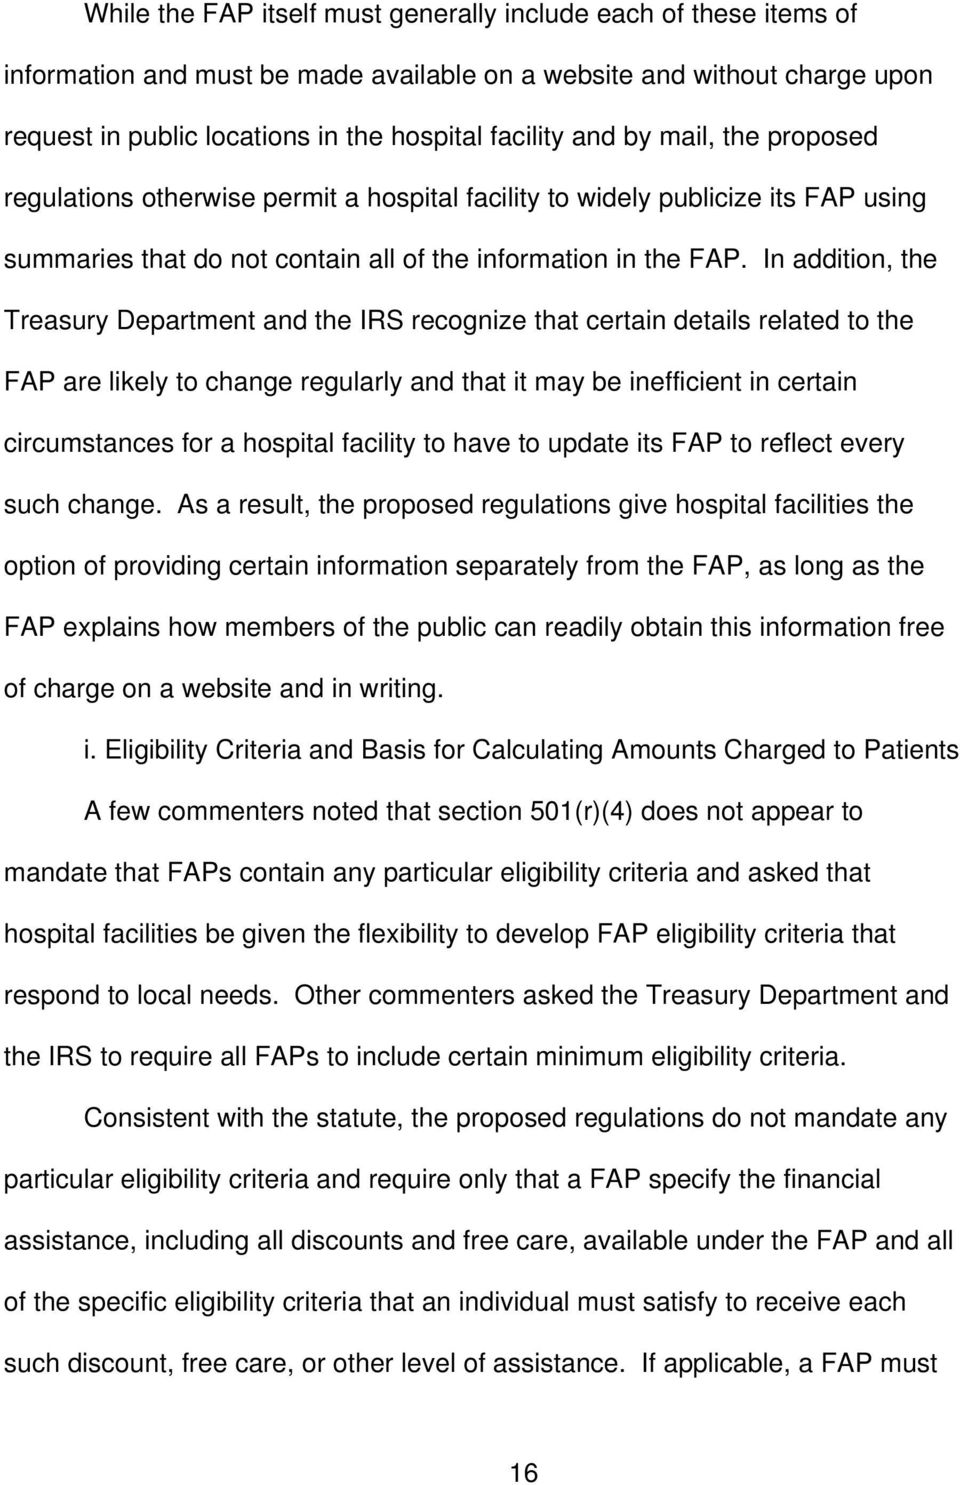 In addition, the Treasury Department and the IRS recognize that certain details related to the FAP are likely to change regularly and that it may be inefficient in certain circumstances for a